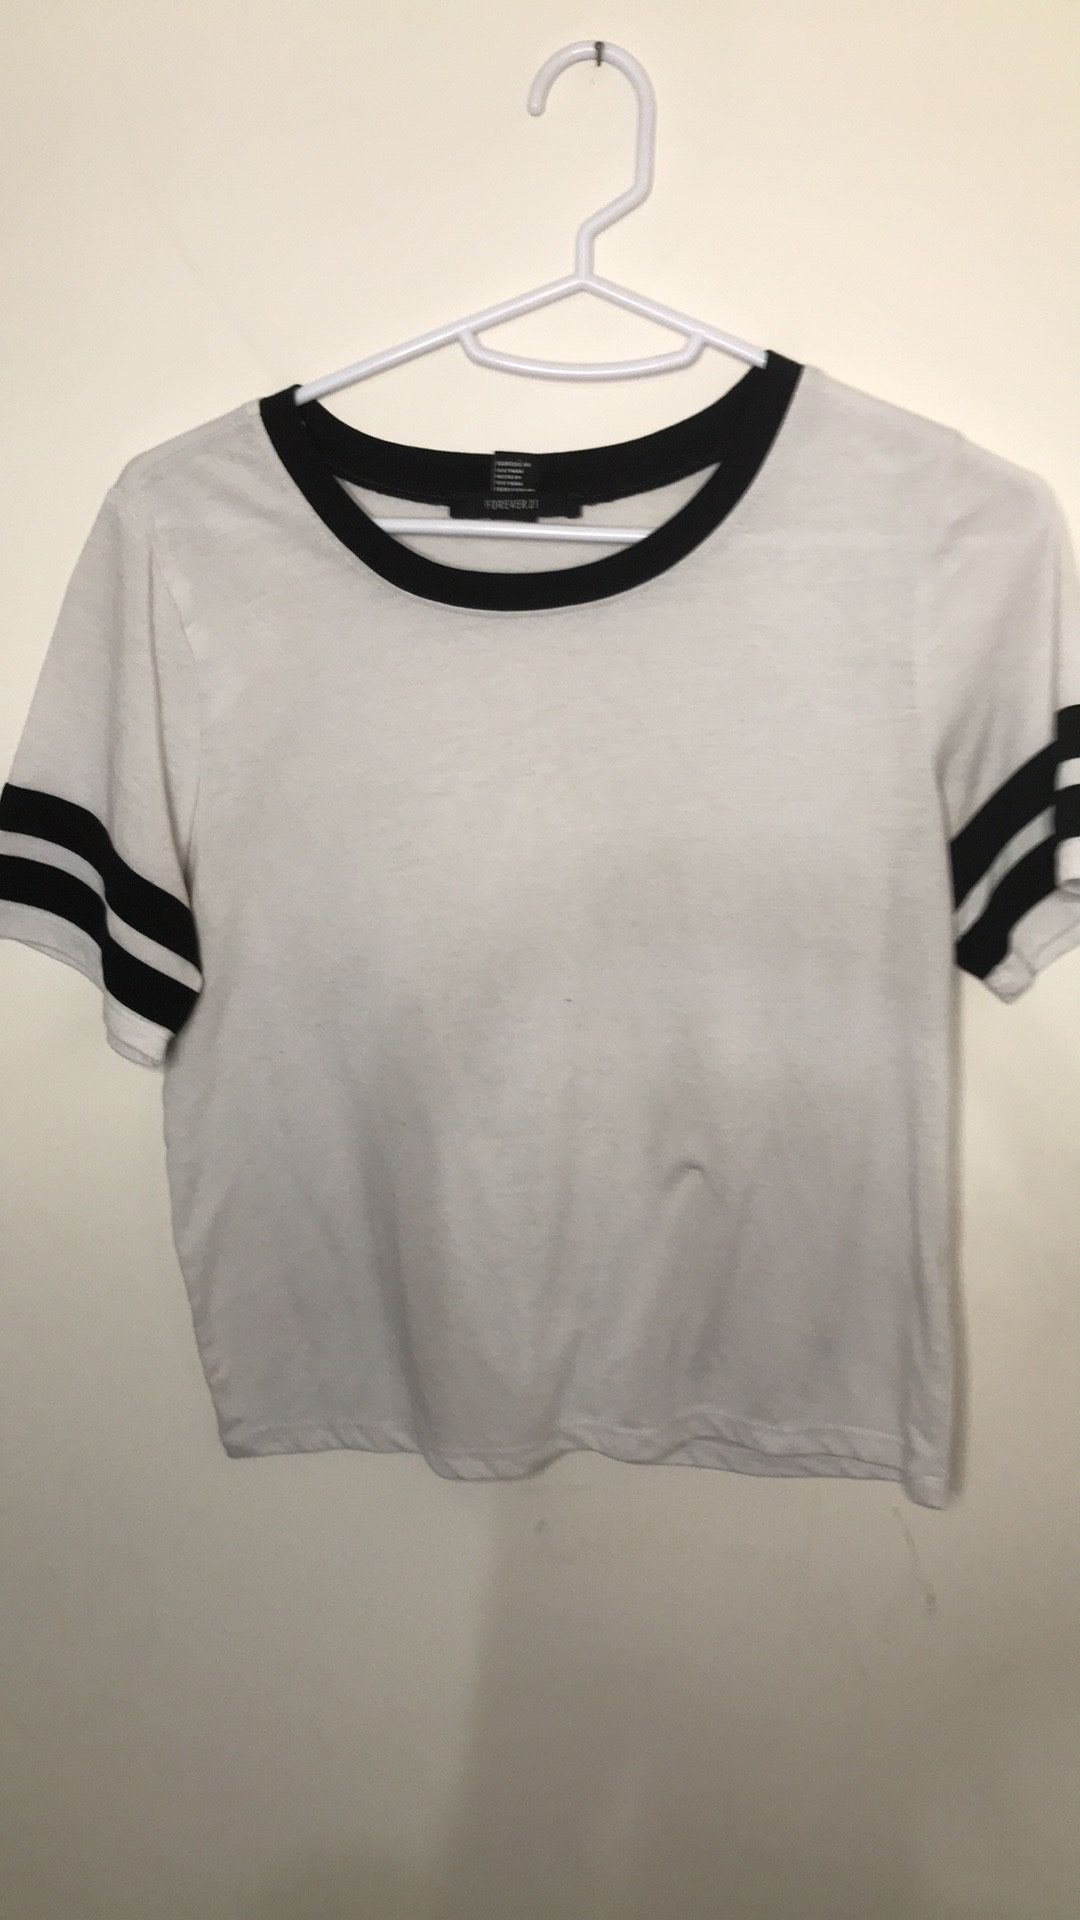 BNWOT forever21 black & white striped top!sz small